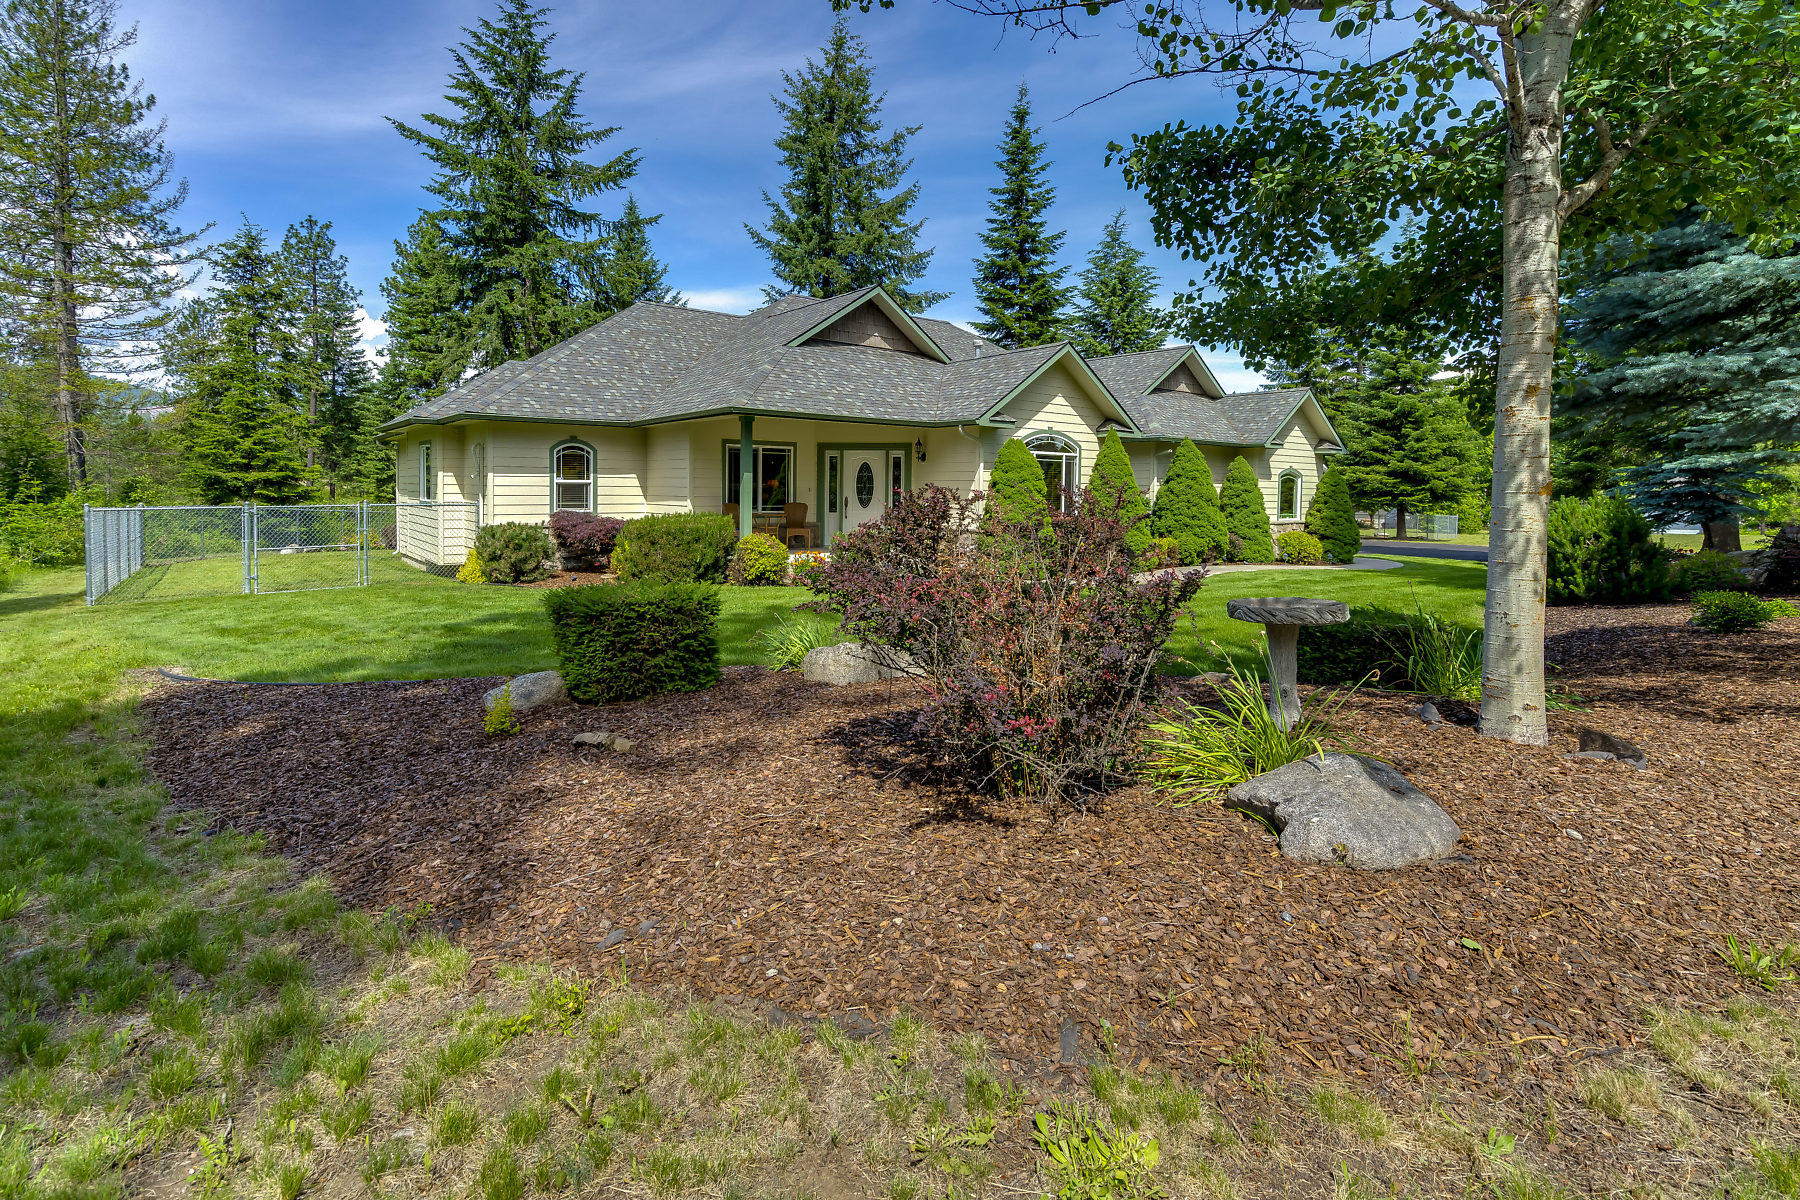 photo of 22199 N RANCH VIEW DR Rathdrum Idaho 83858